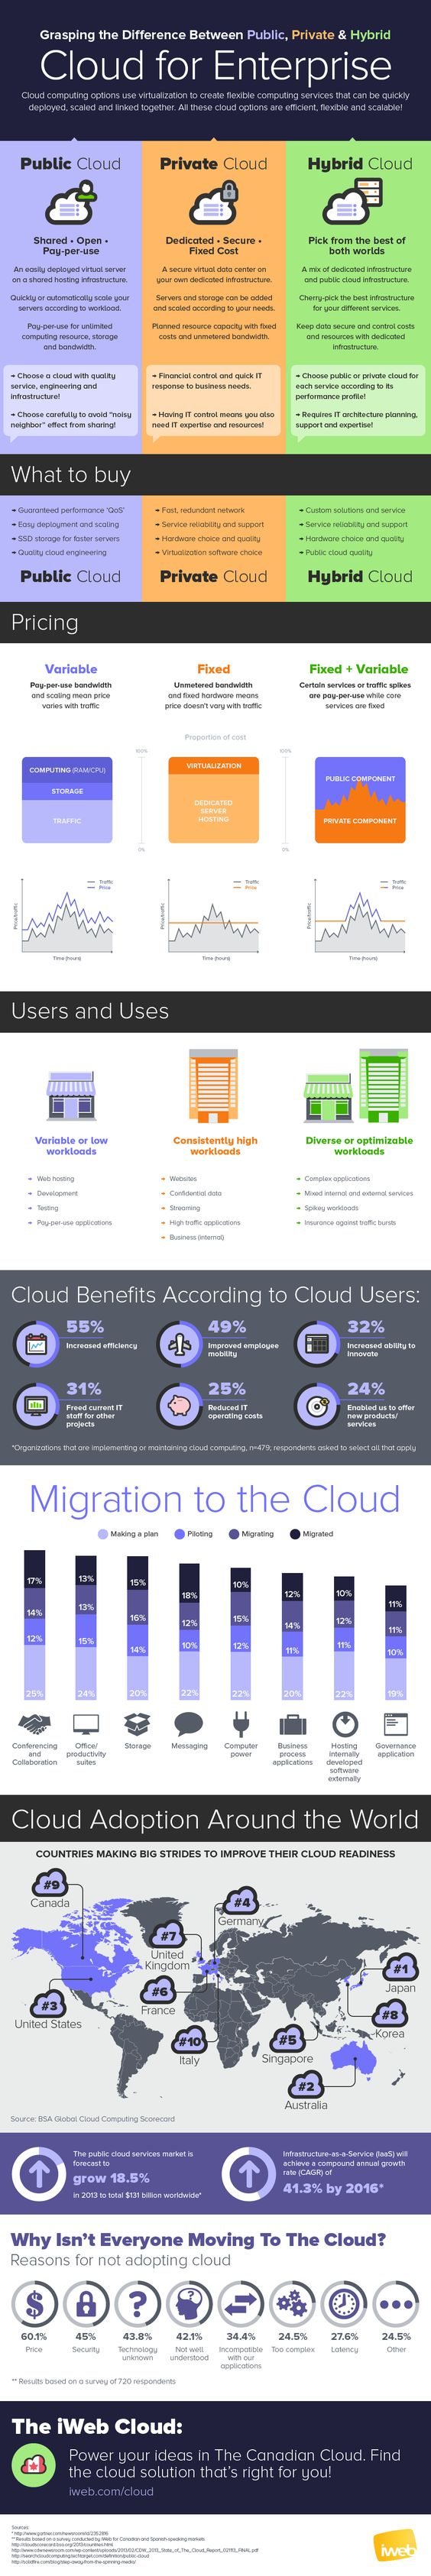 [InfoGraphic] Grasping the Difference Between Public, Private & Hybrid Cloud for Enterprise - YourDailyTech